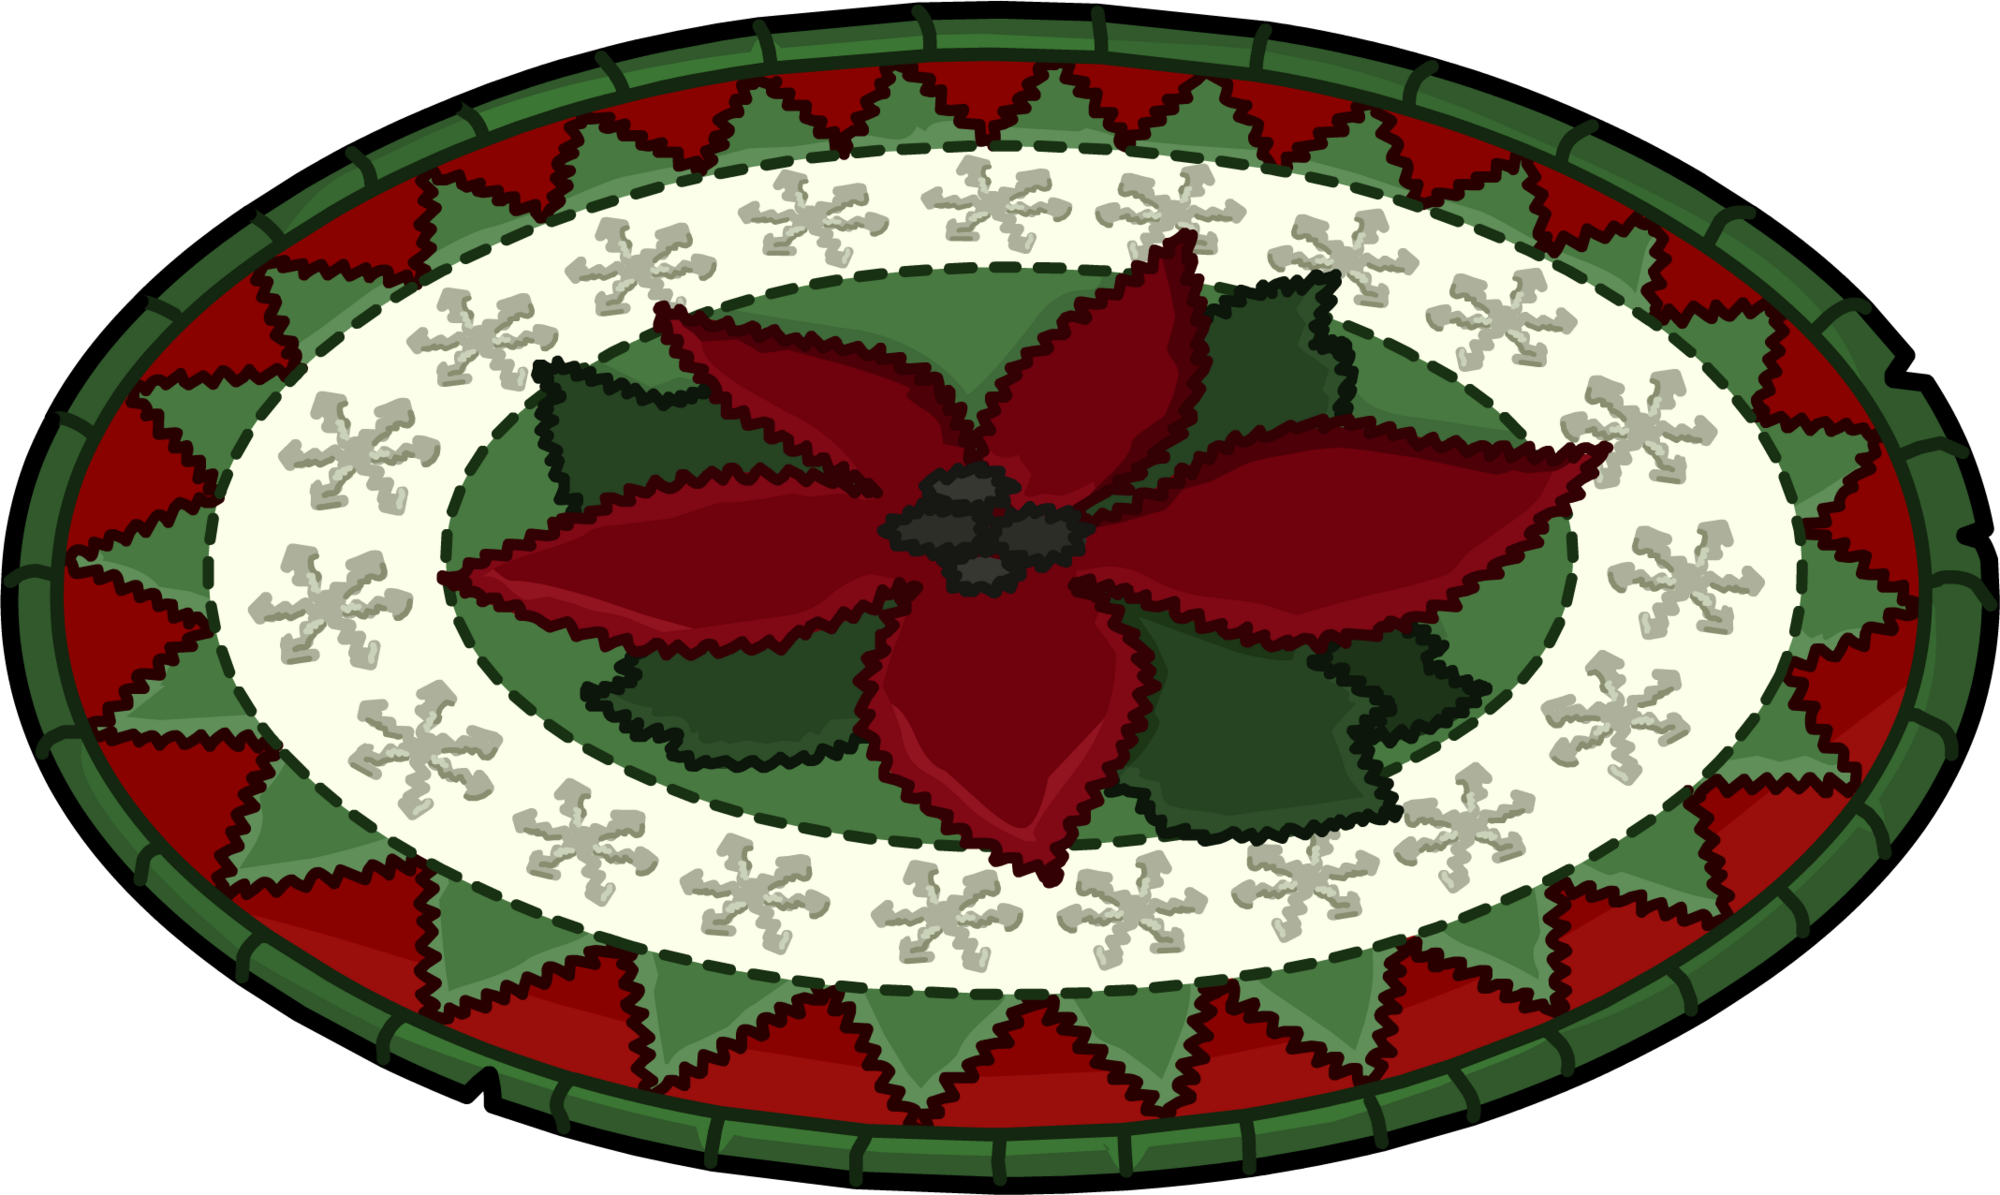 Holly Jolly Rug | Club Penguin Wiki | FANDOM powered by Wikia